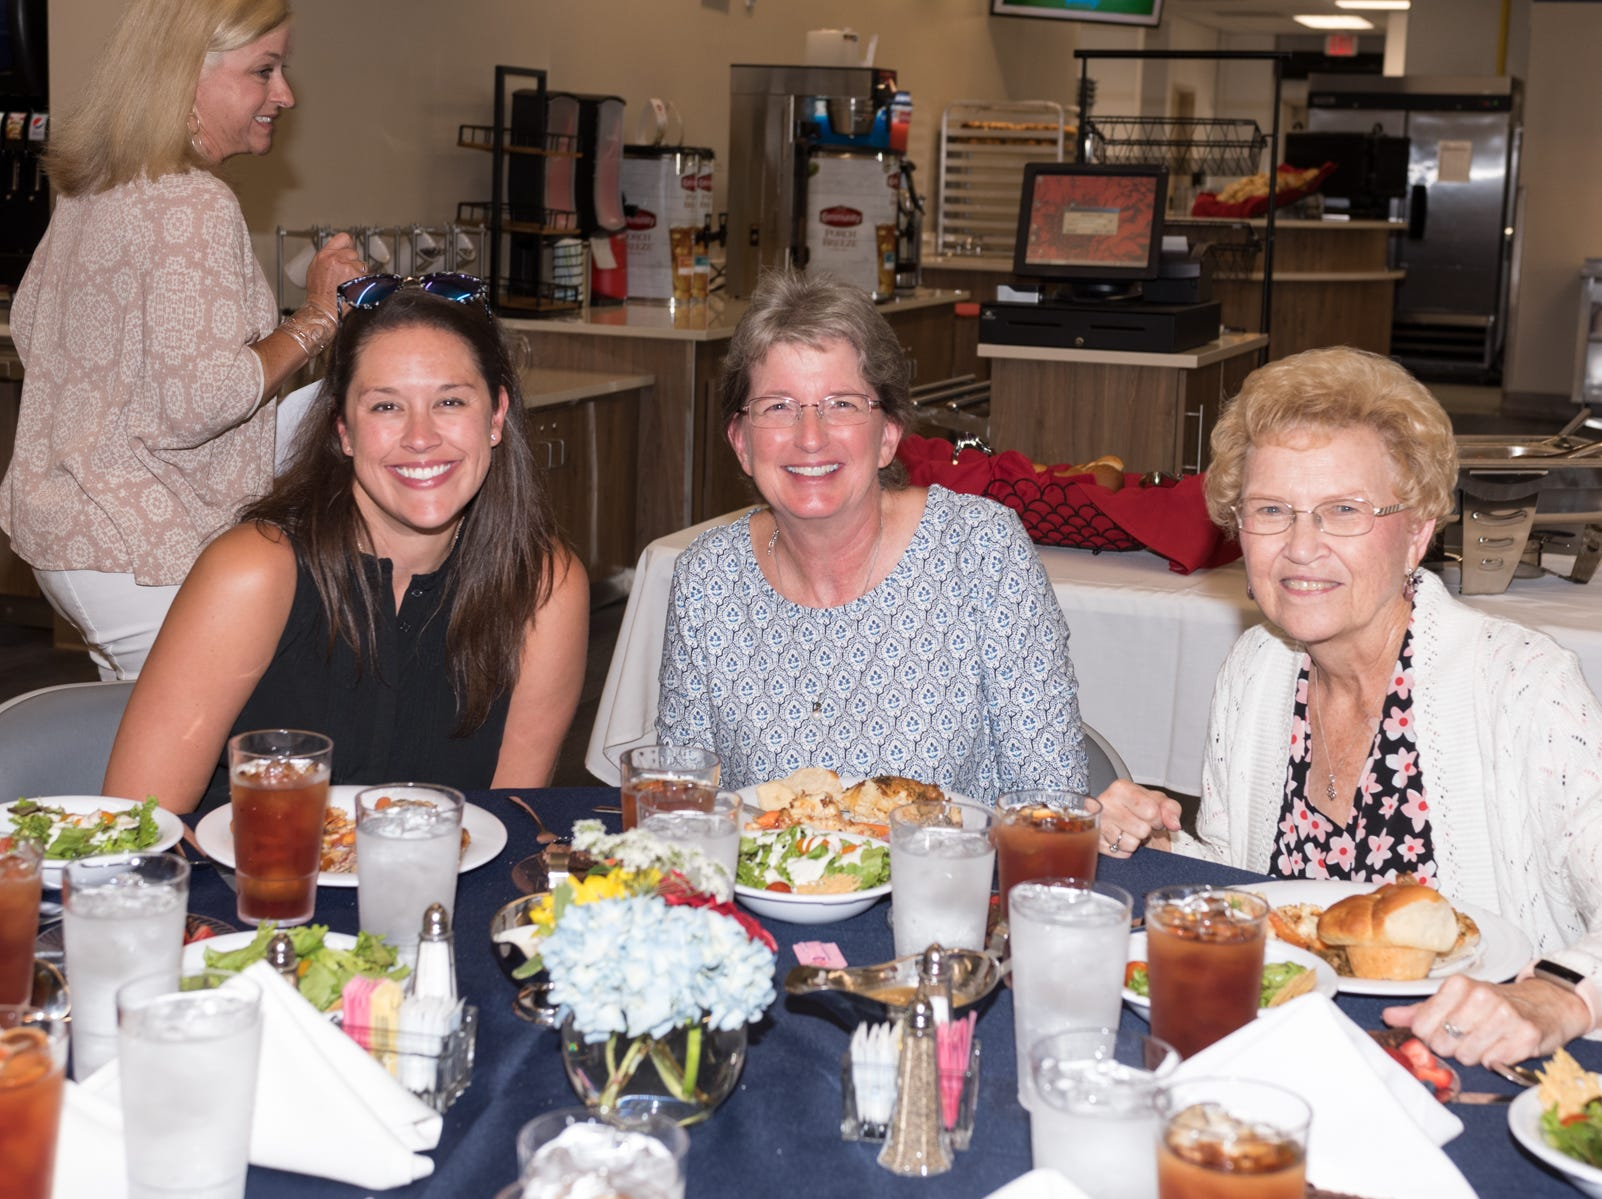 MRA faculty members, from left, Frances Dykes, Donna Allen and Wren Gregory enjoy the festivities. Dykes and Allen are alumni.